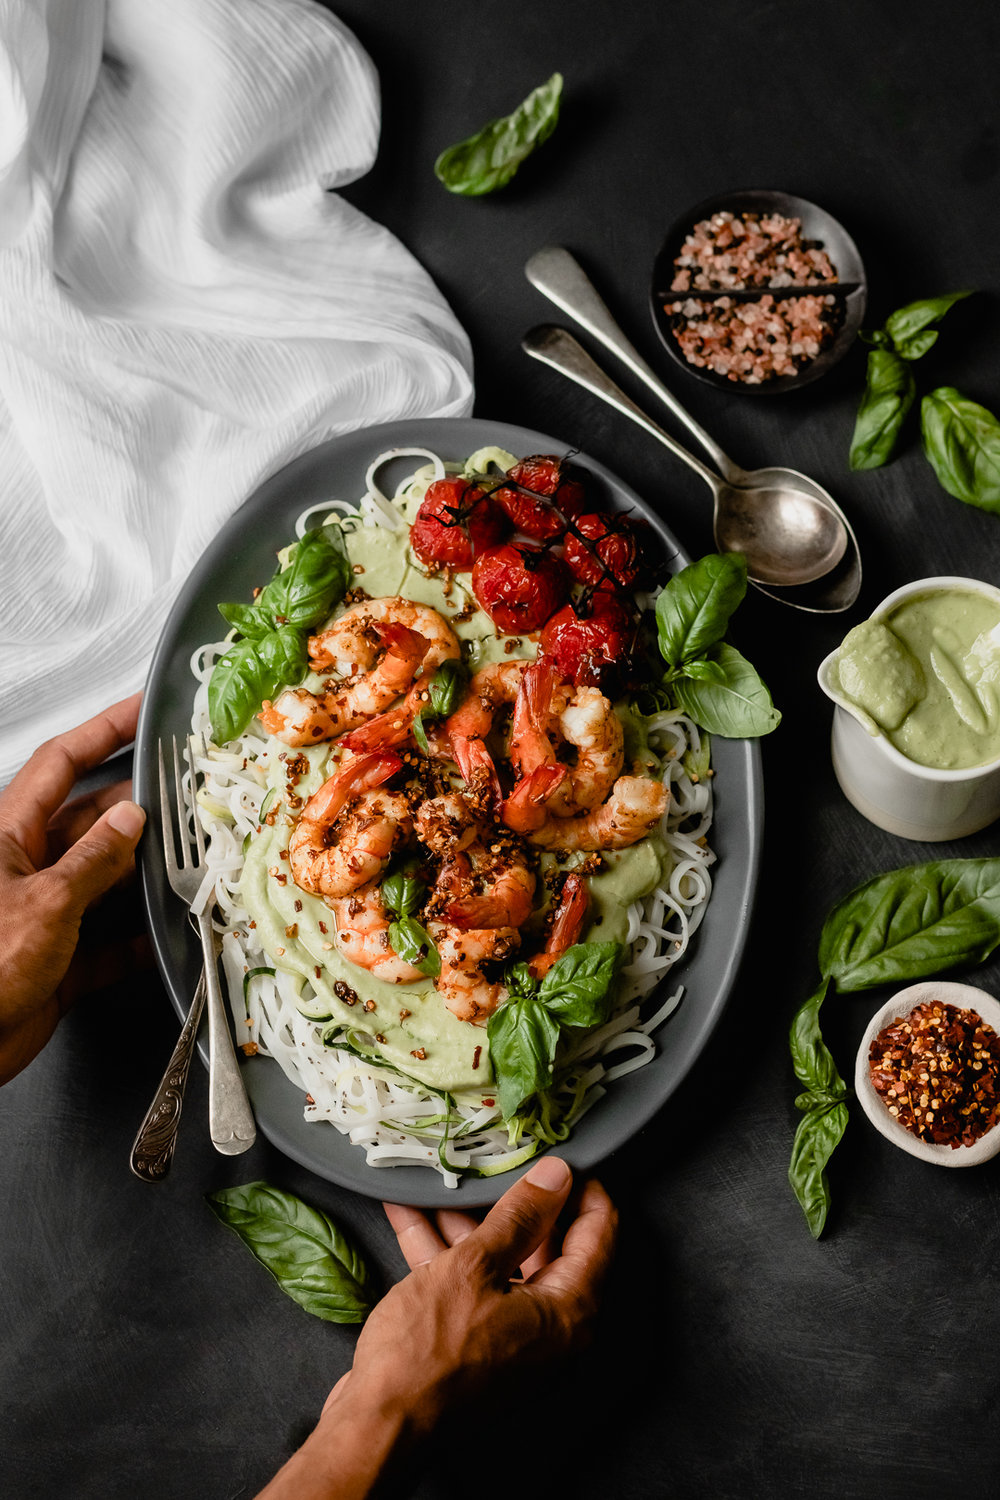 Basil_and_Prawn_Alfredo_Noodles_by_Jordan_Pie_Nutritionist_Photographer-1.jpg